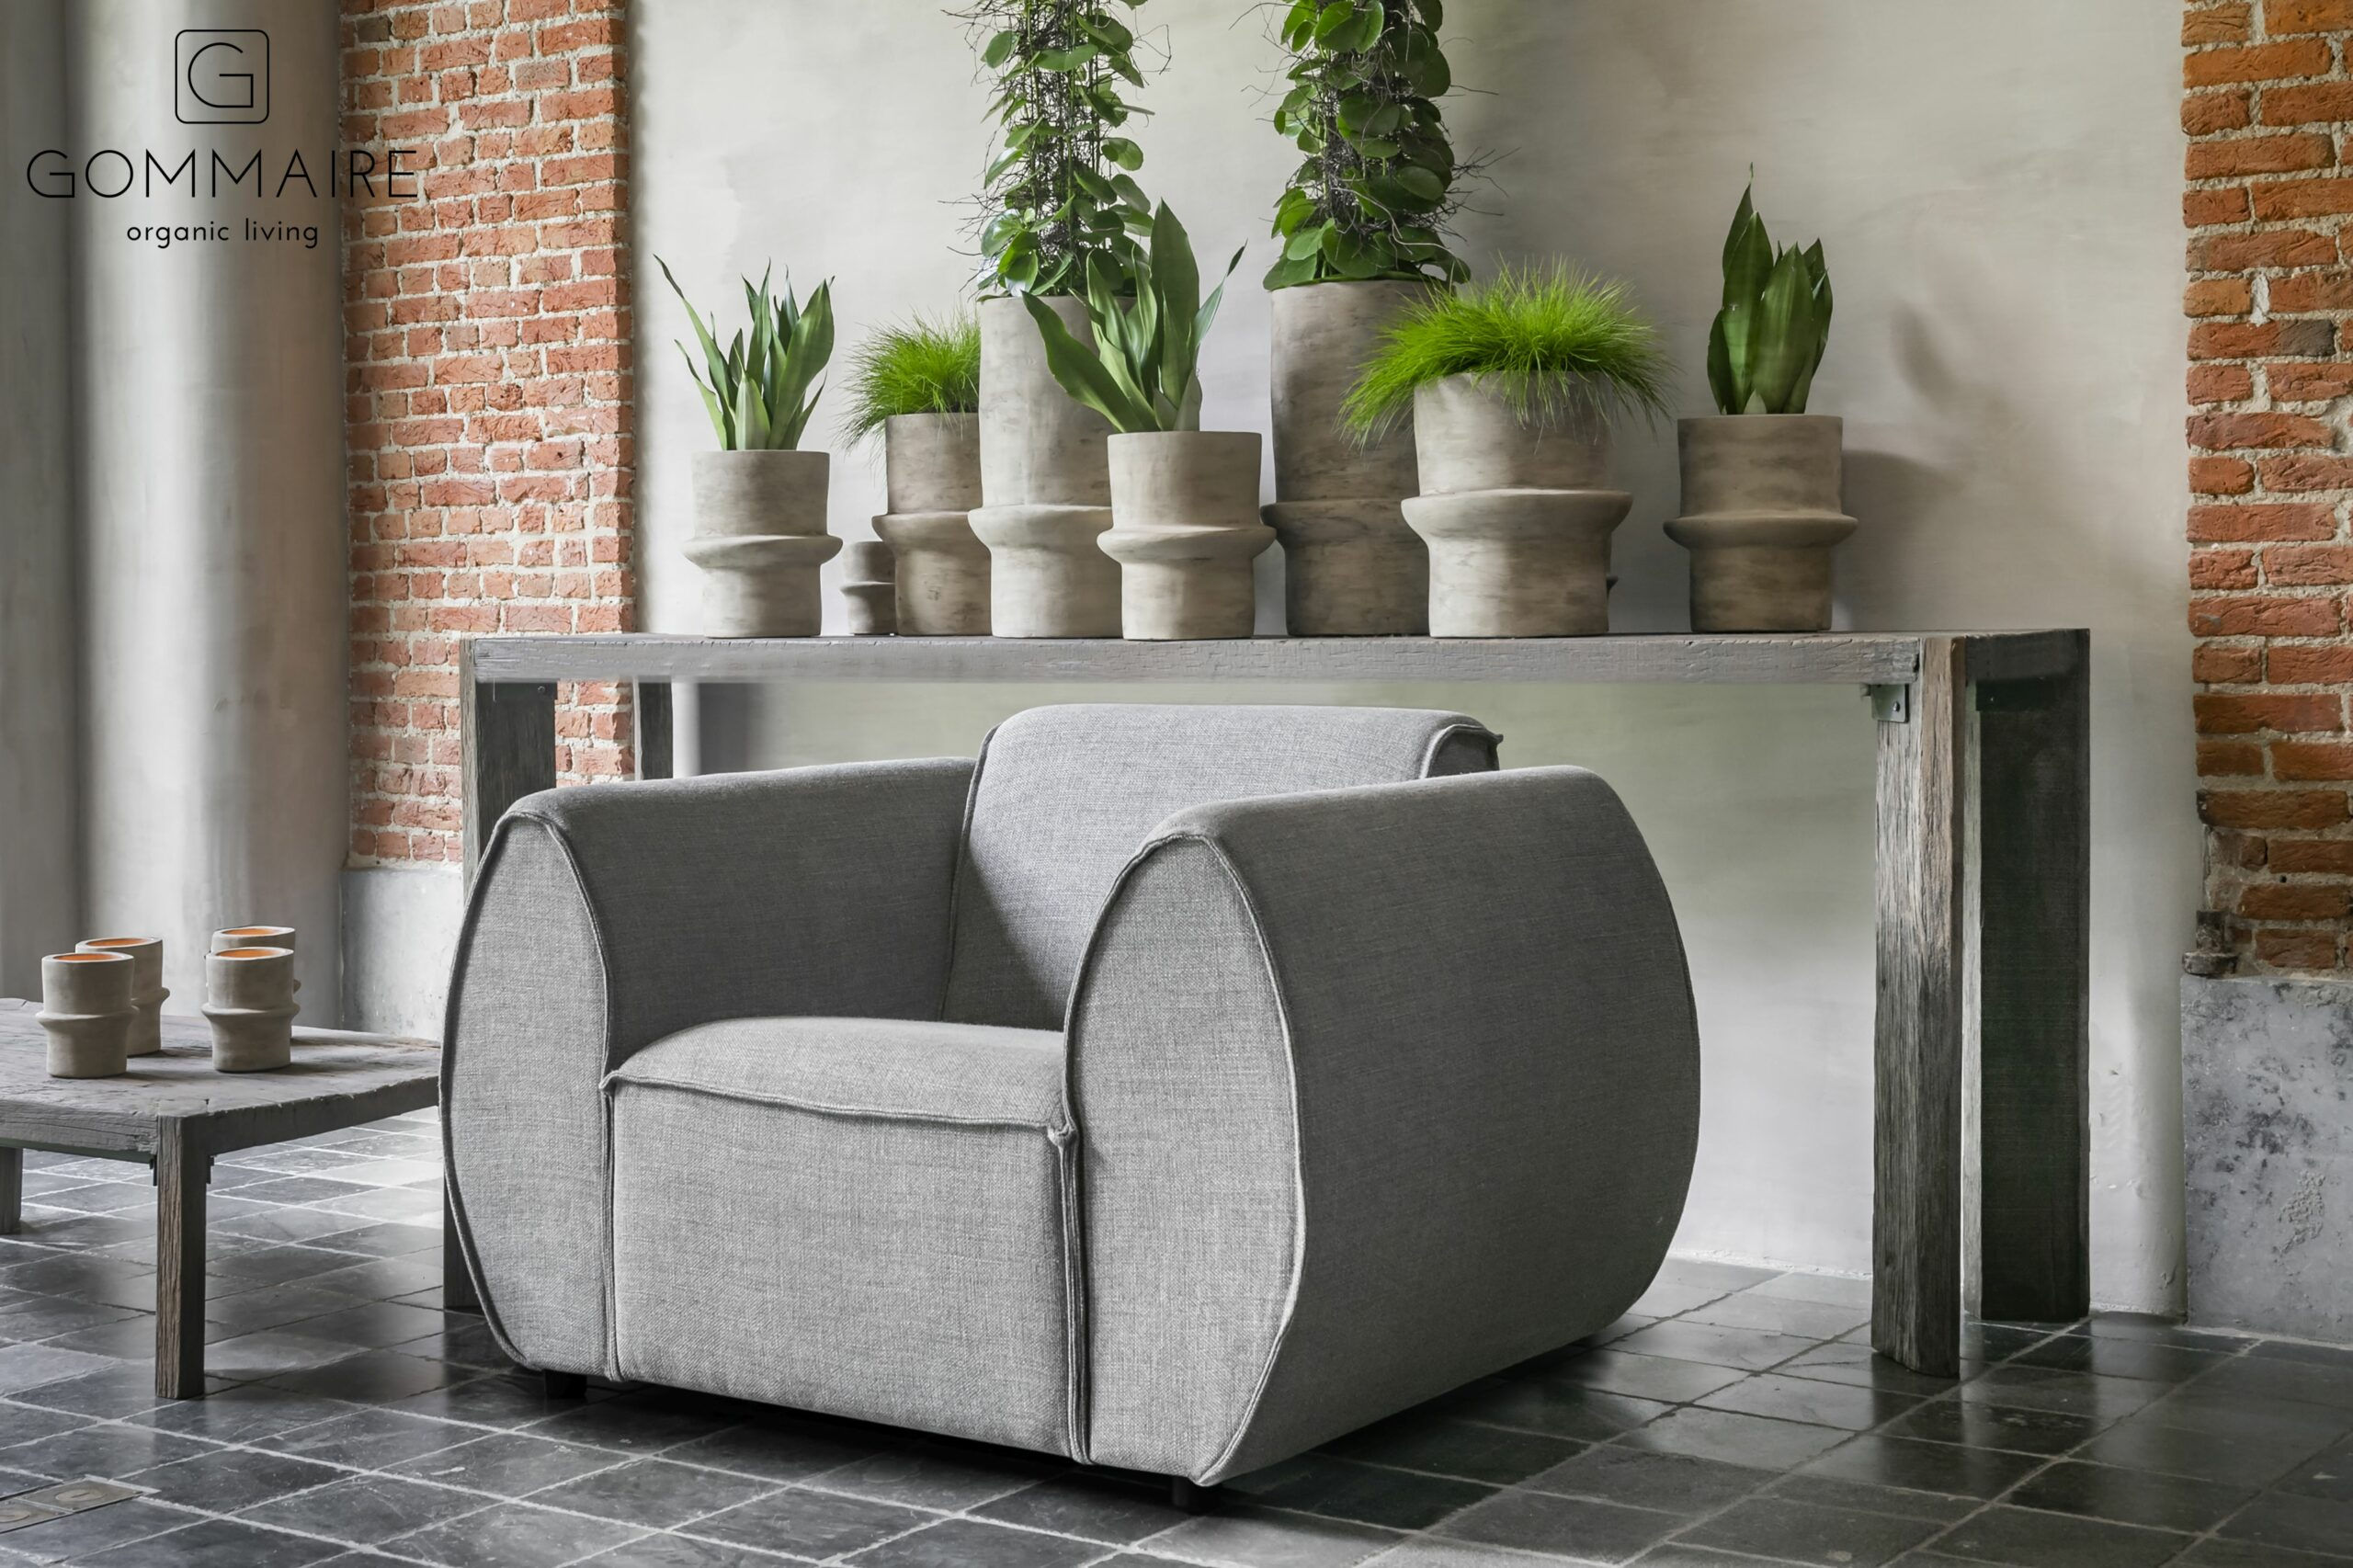 Gommaire indoor wood furniture- console archie